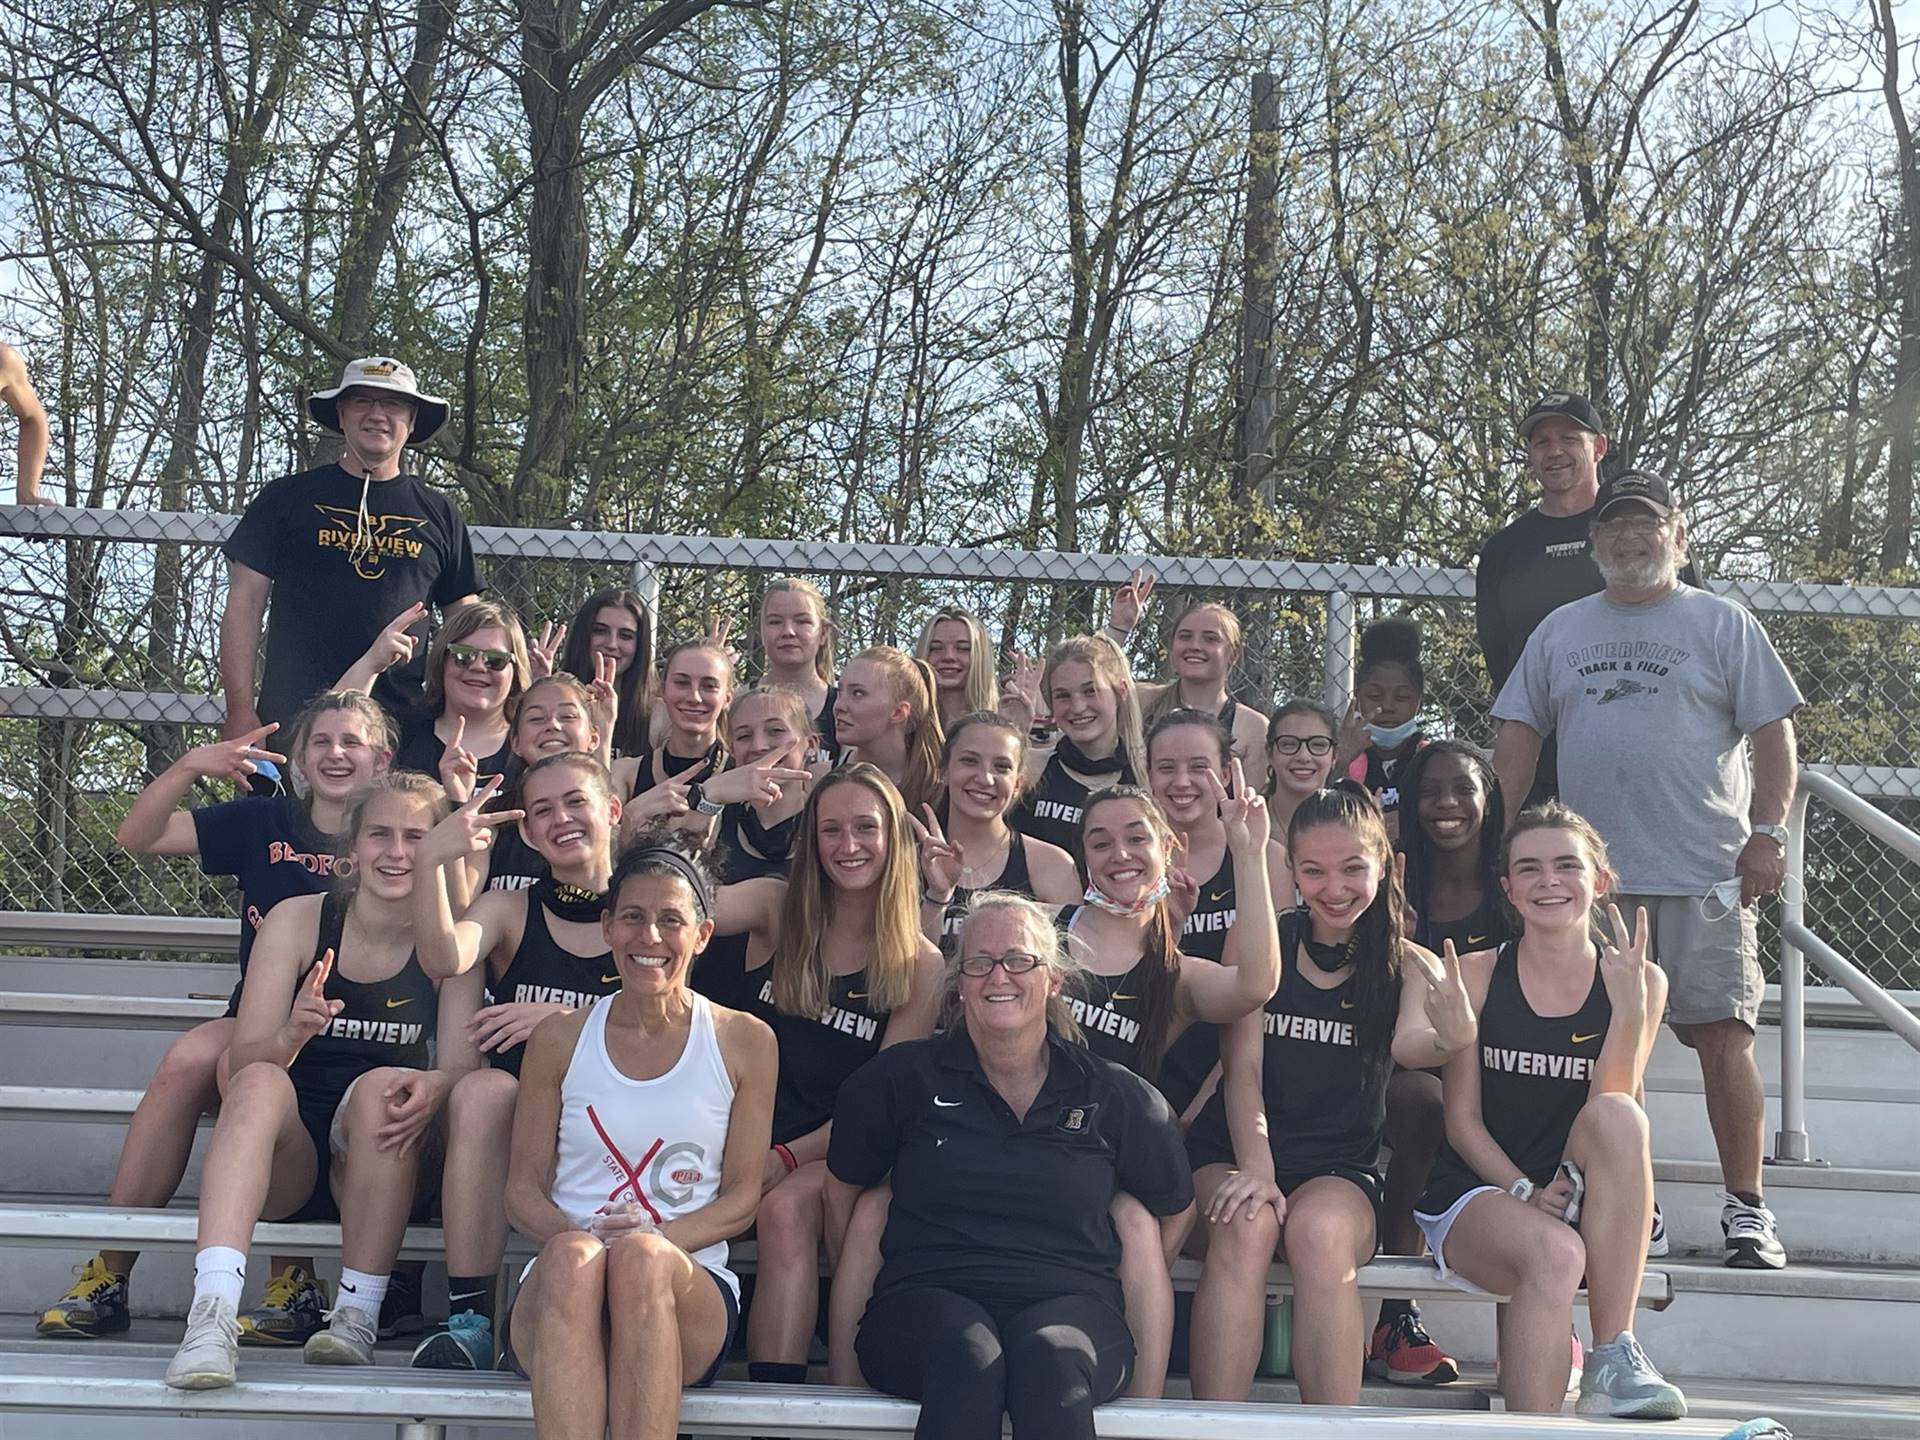 Riverview Girls' Track and Field Team